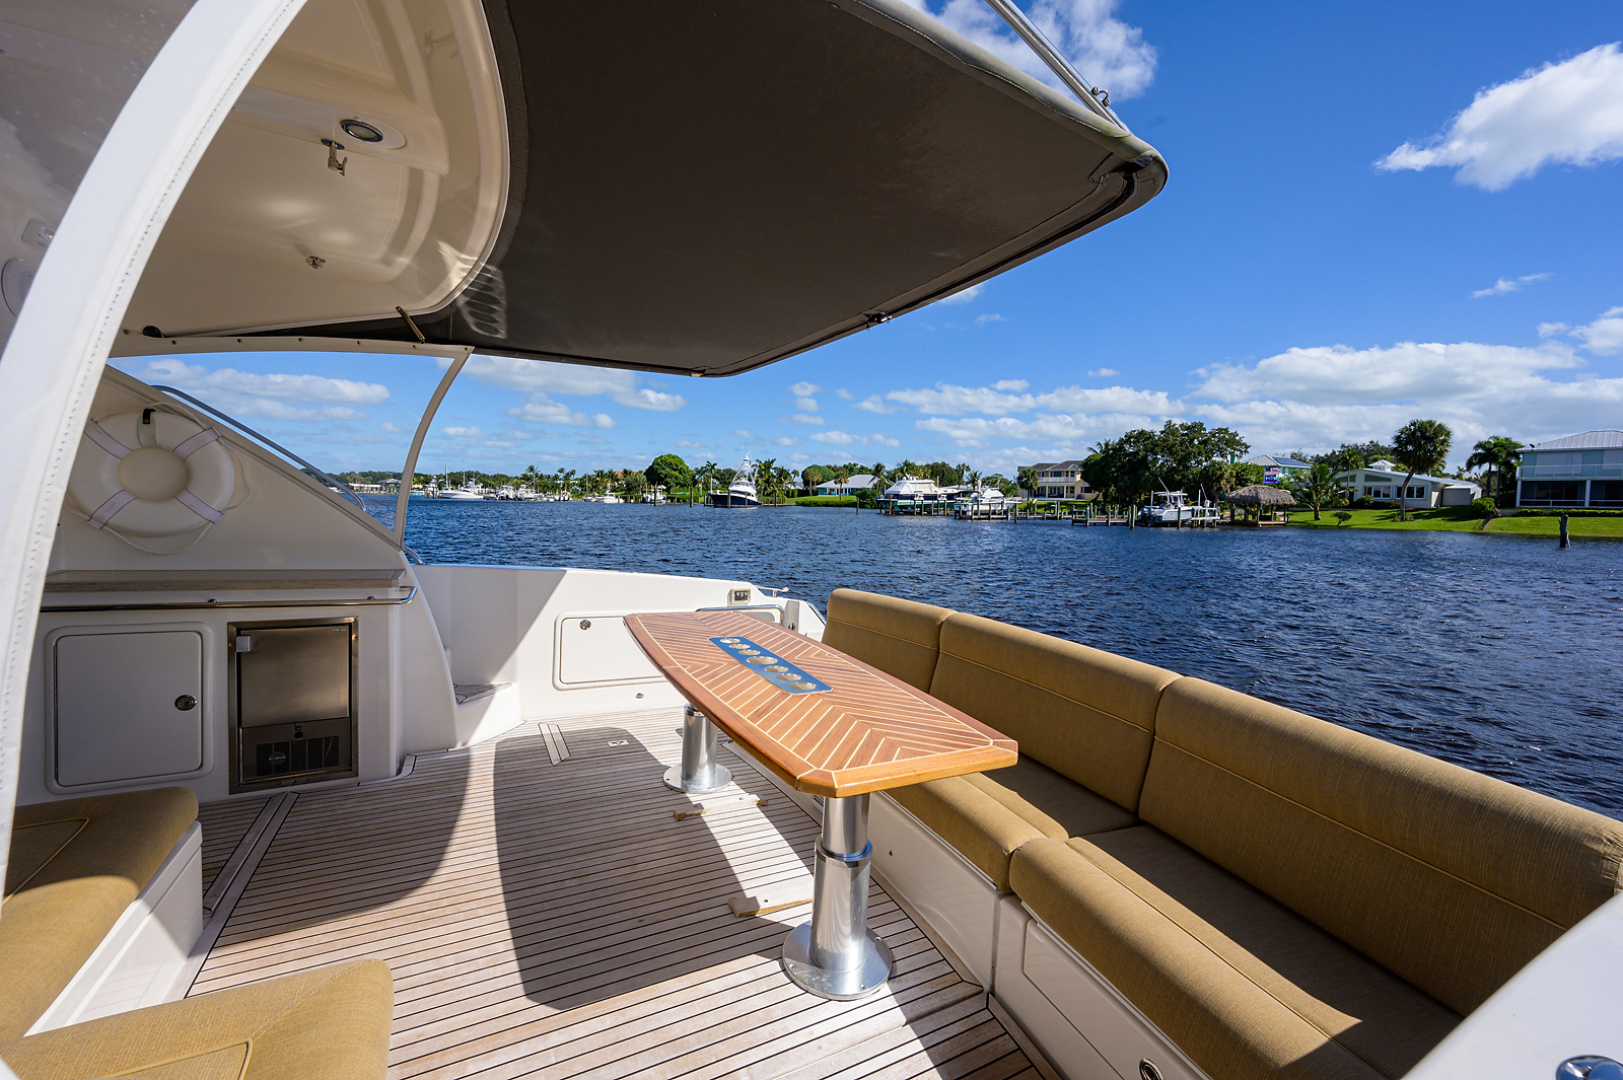 Riviera-5000 Sport Yacht 2012-Lady J Palm Beach-Florida-United States-1553511 | Thumbnail